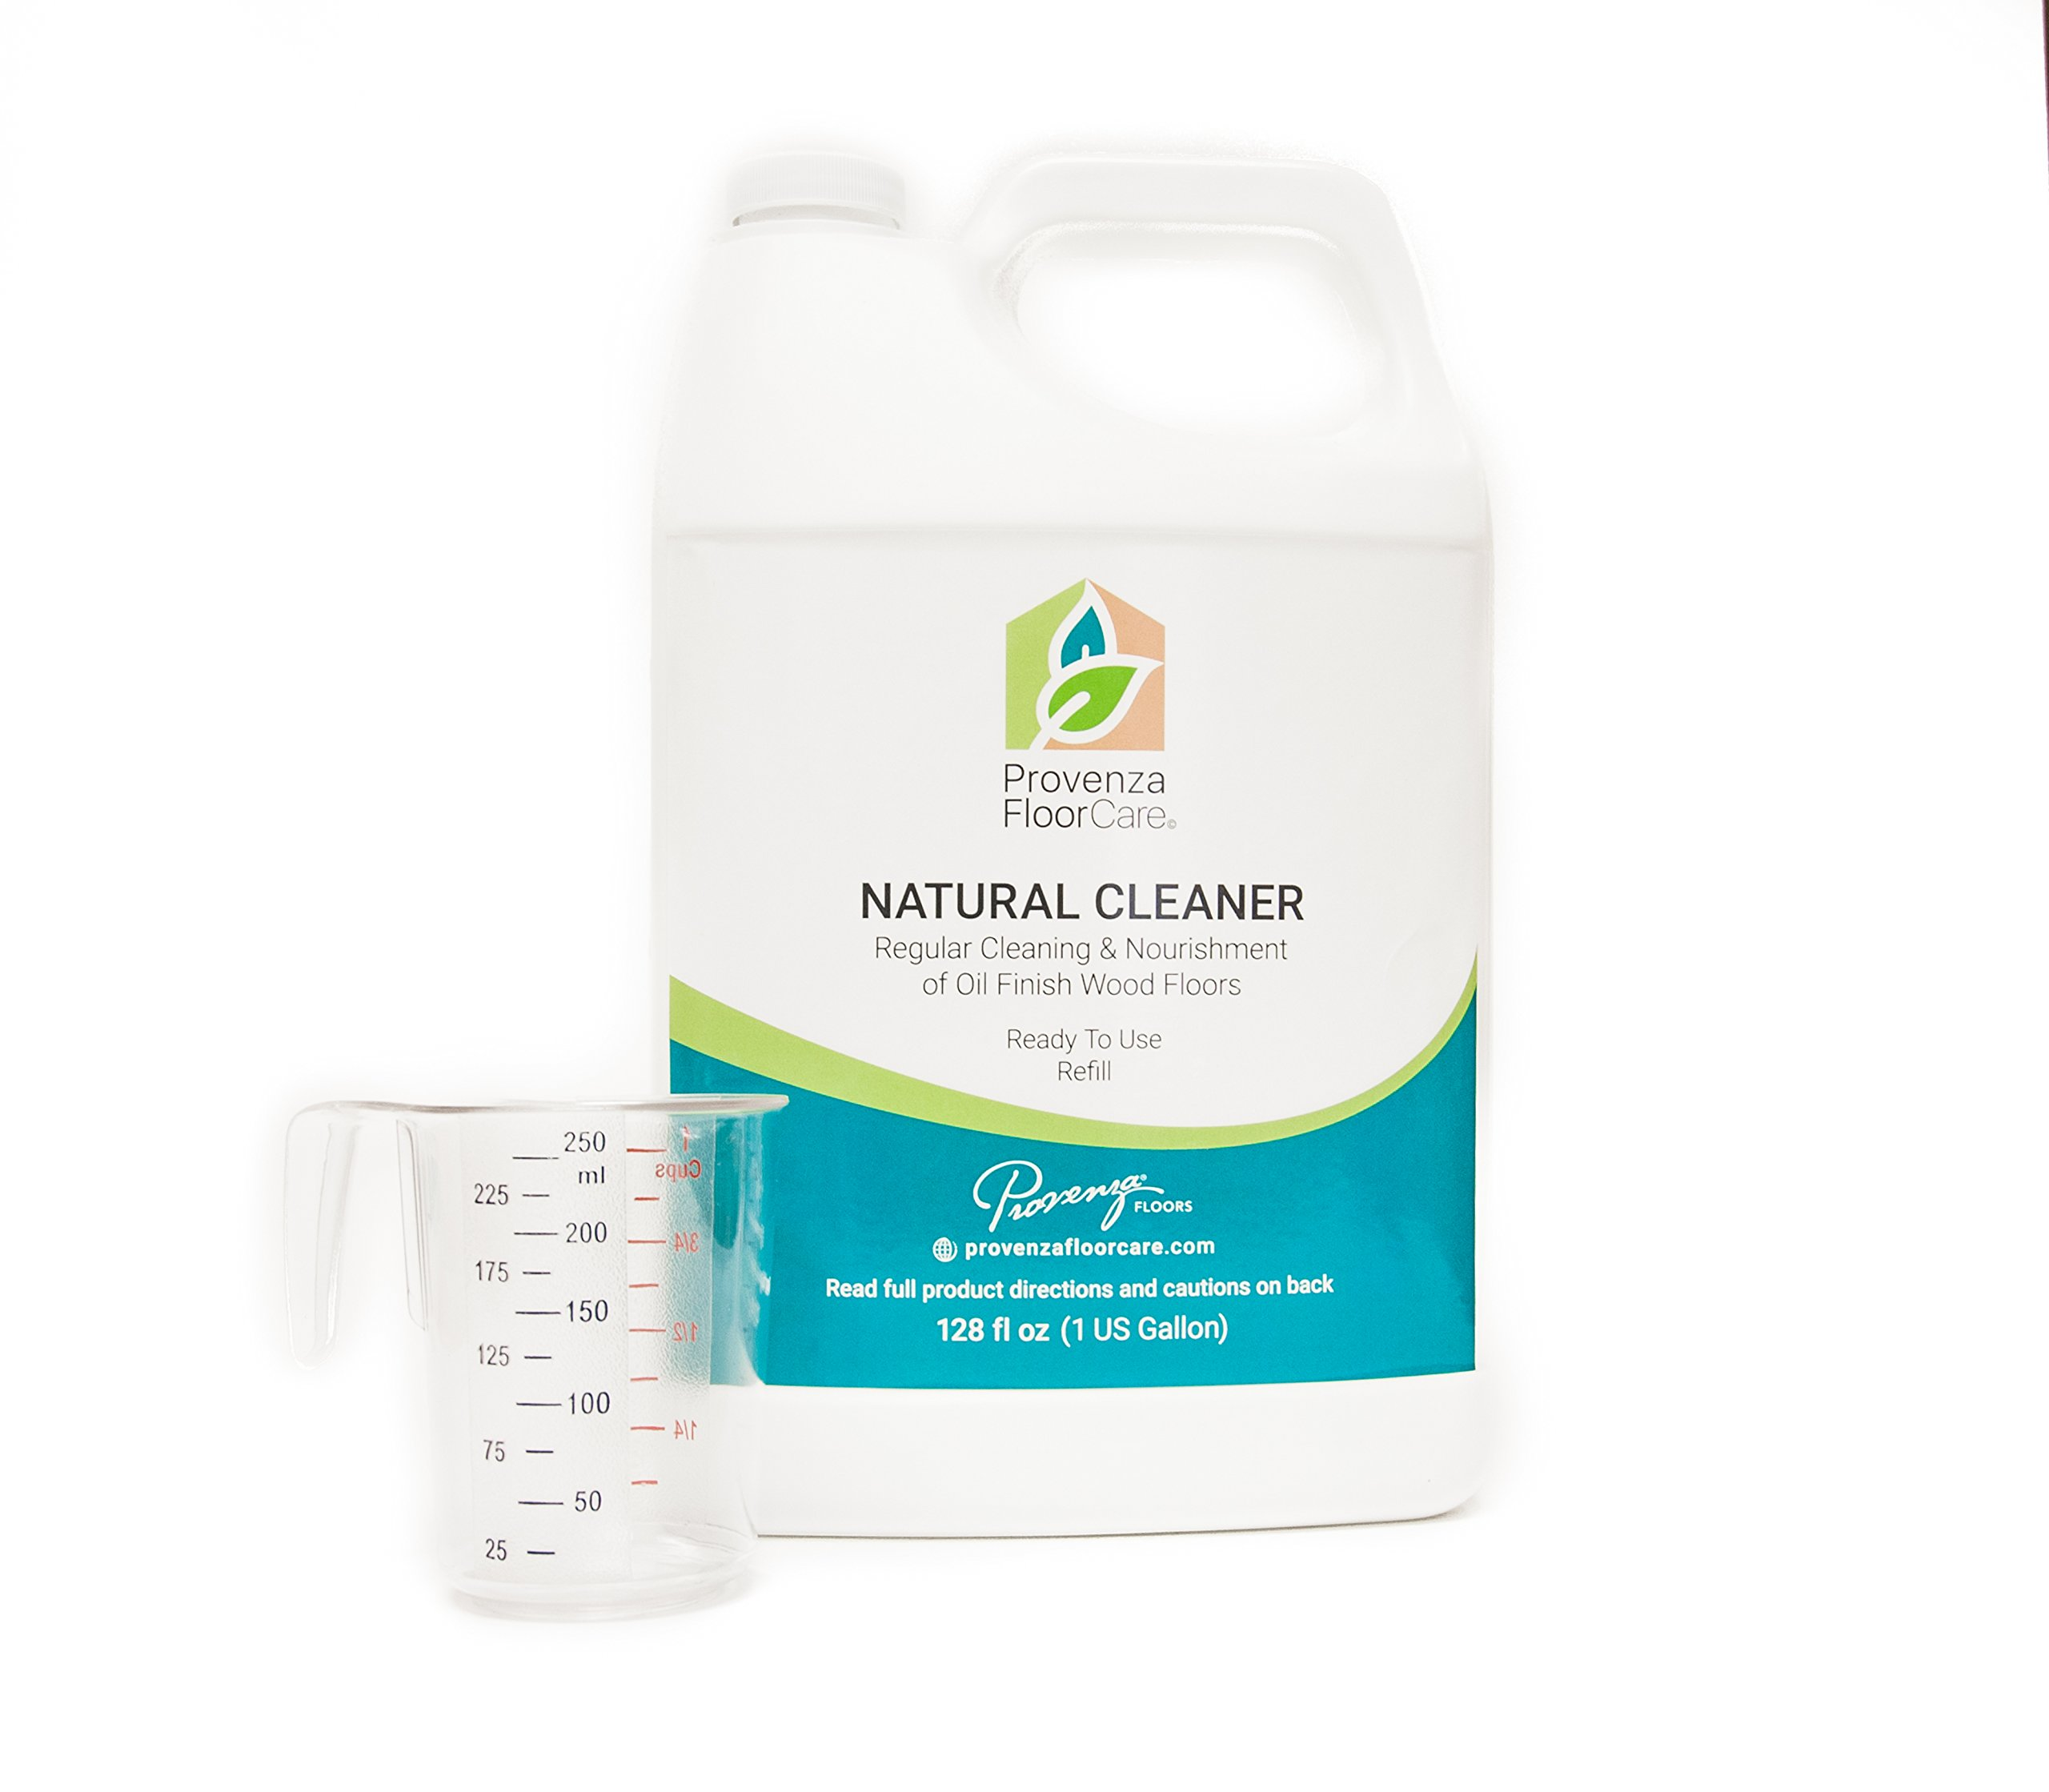 Provenza Natural Cleaner Ready to Use Refill - 1 Gallon (128 fl.oz)